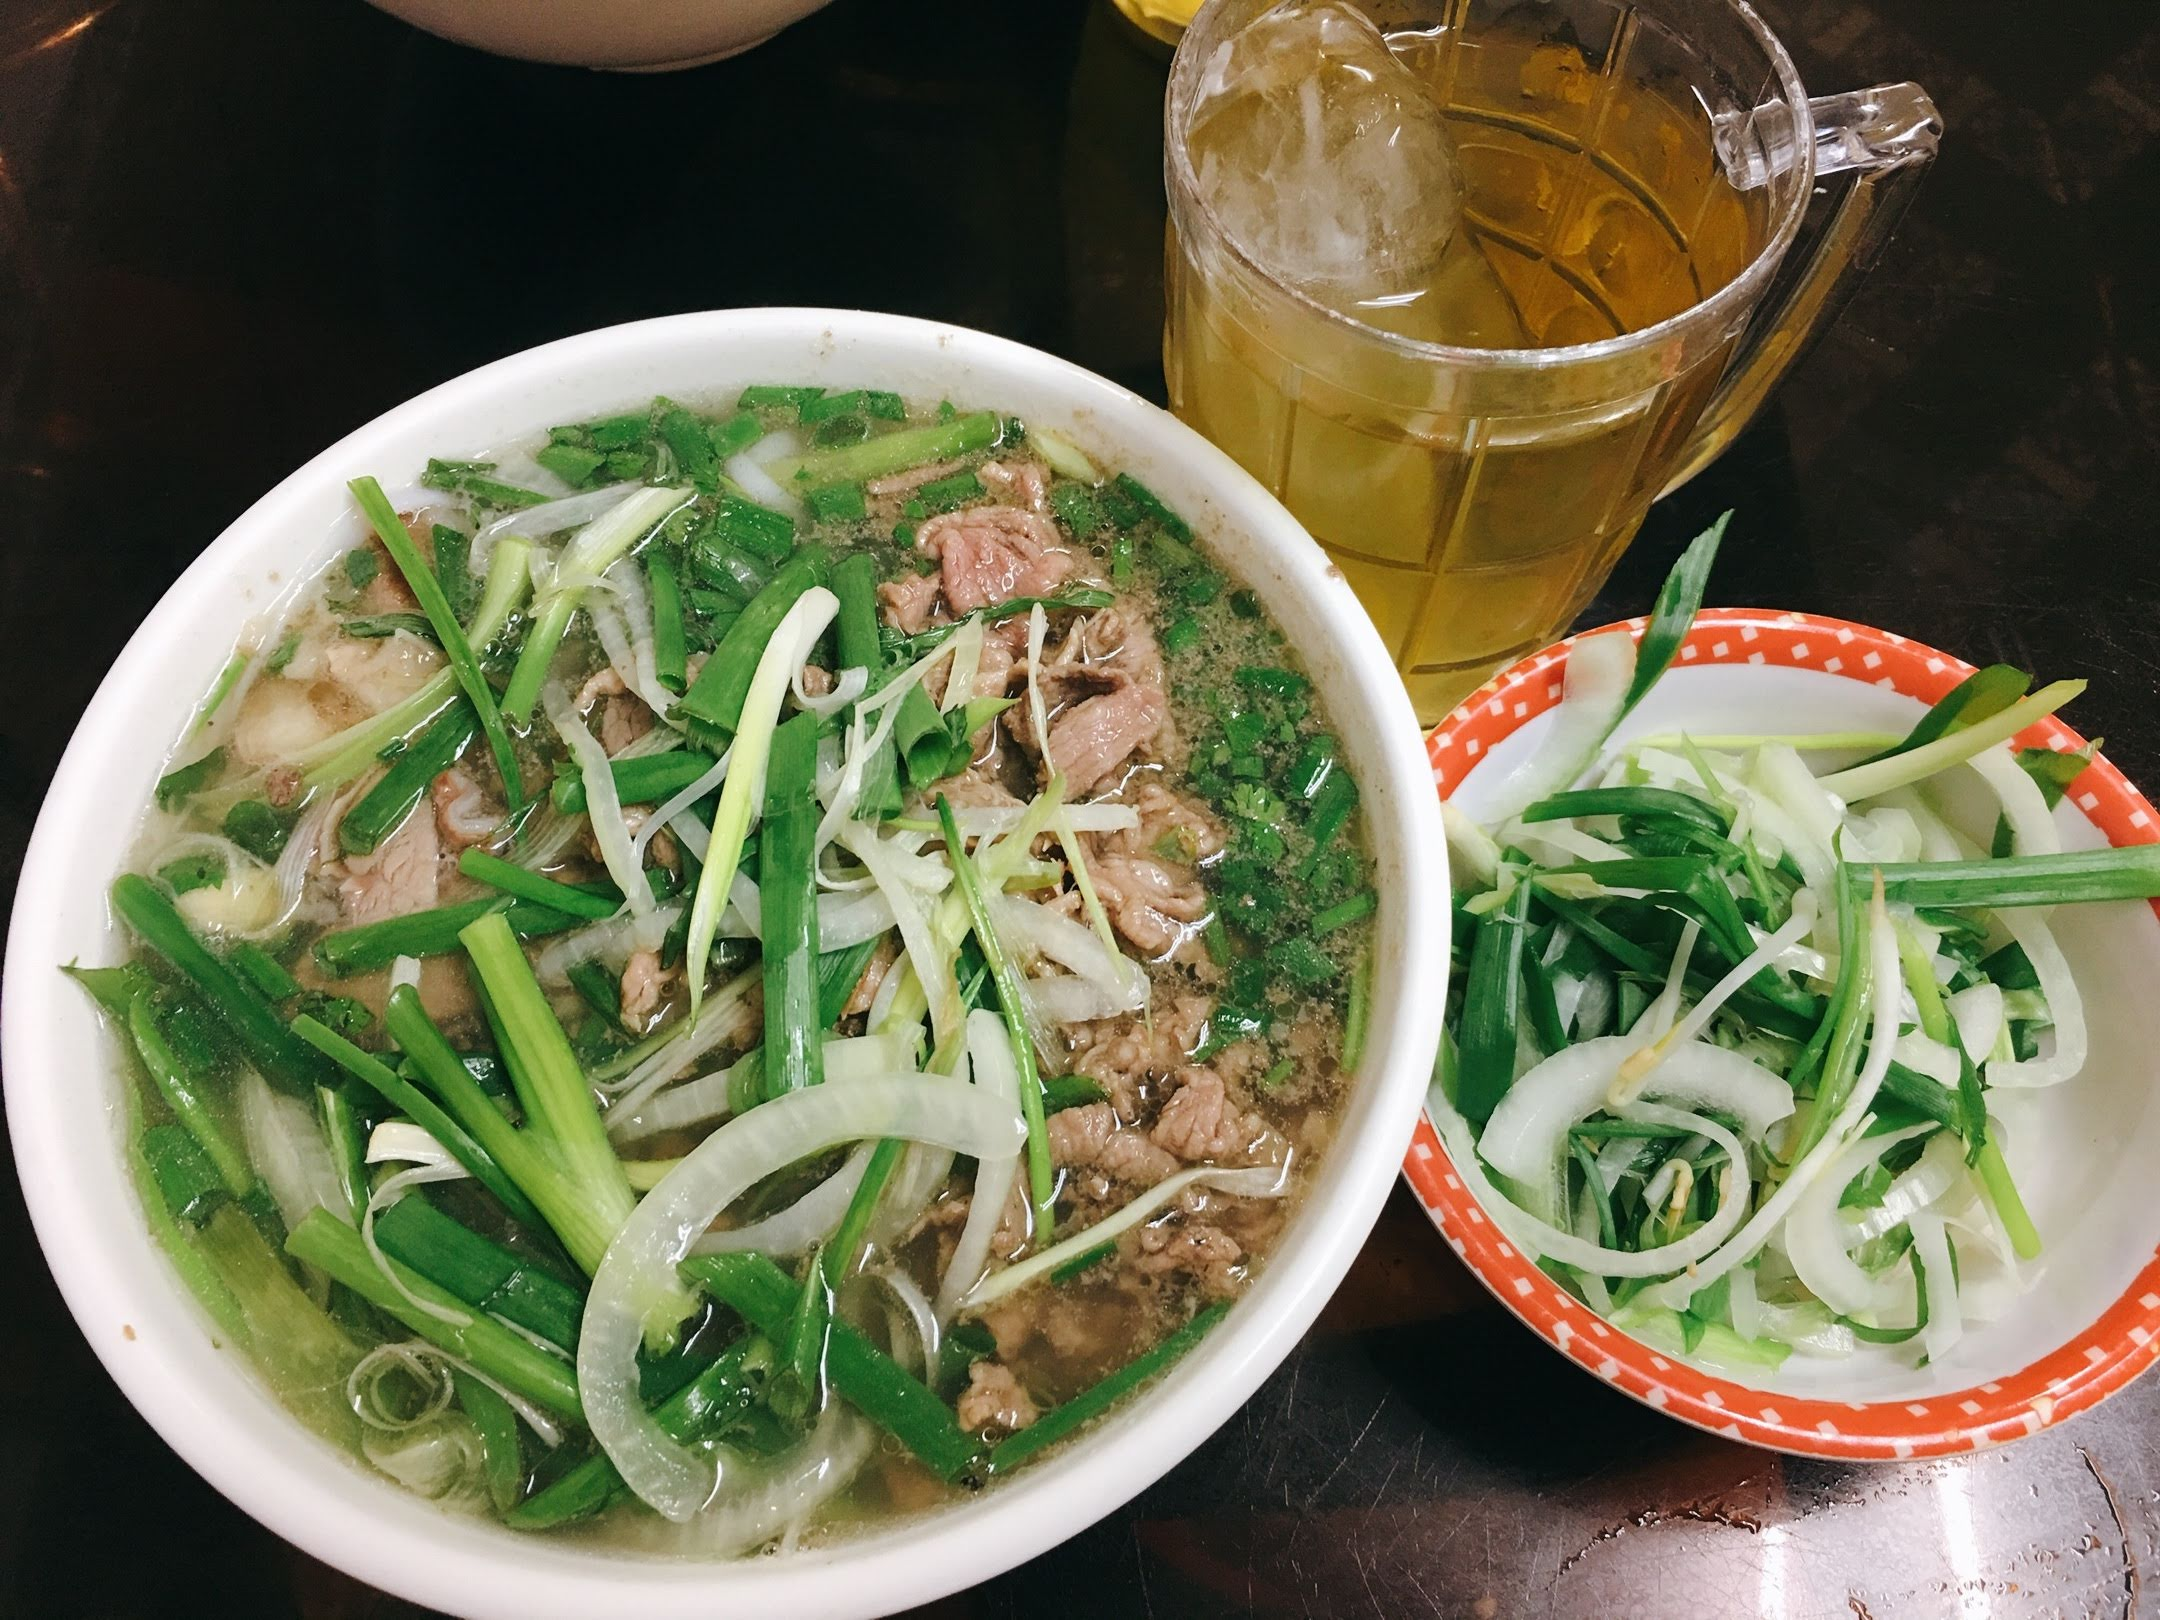 Northen-styled pho is served at a restaurant on Ly Chinh Thang Street in Ho Chi Minh City's District 3. Photo: Dong Nguyen / Tuoi Tre News